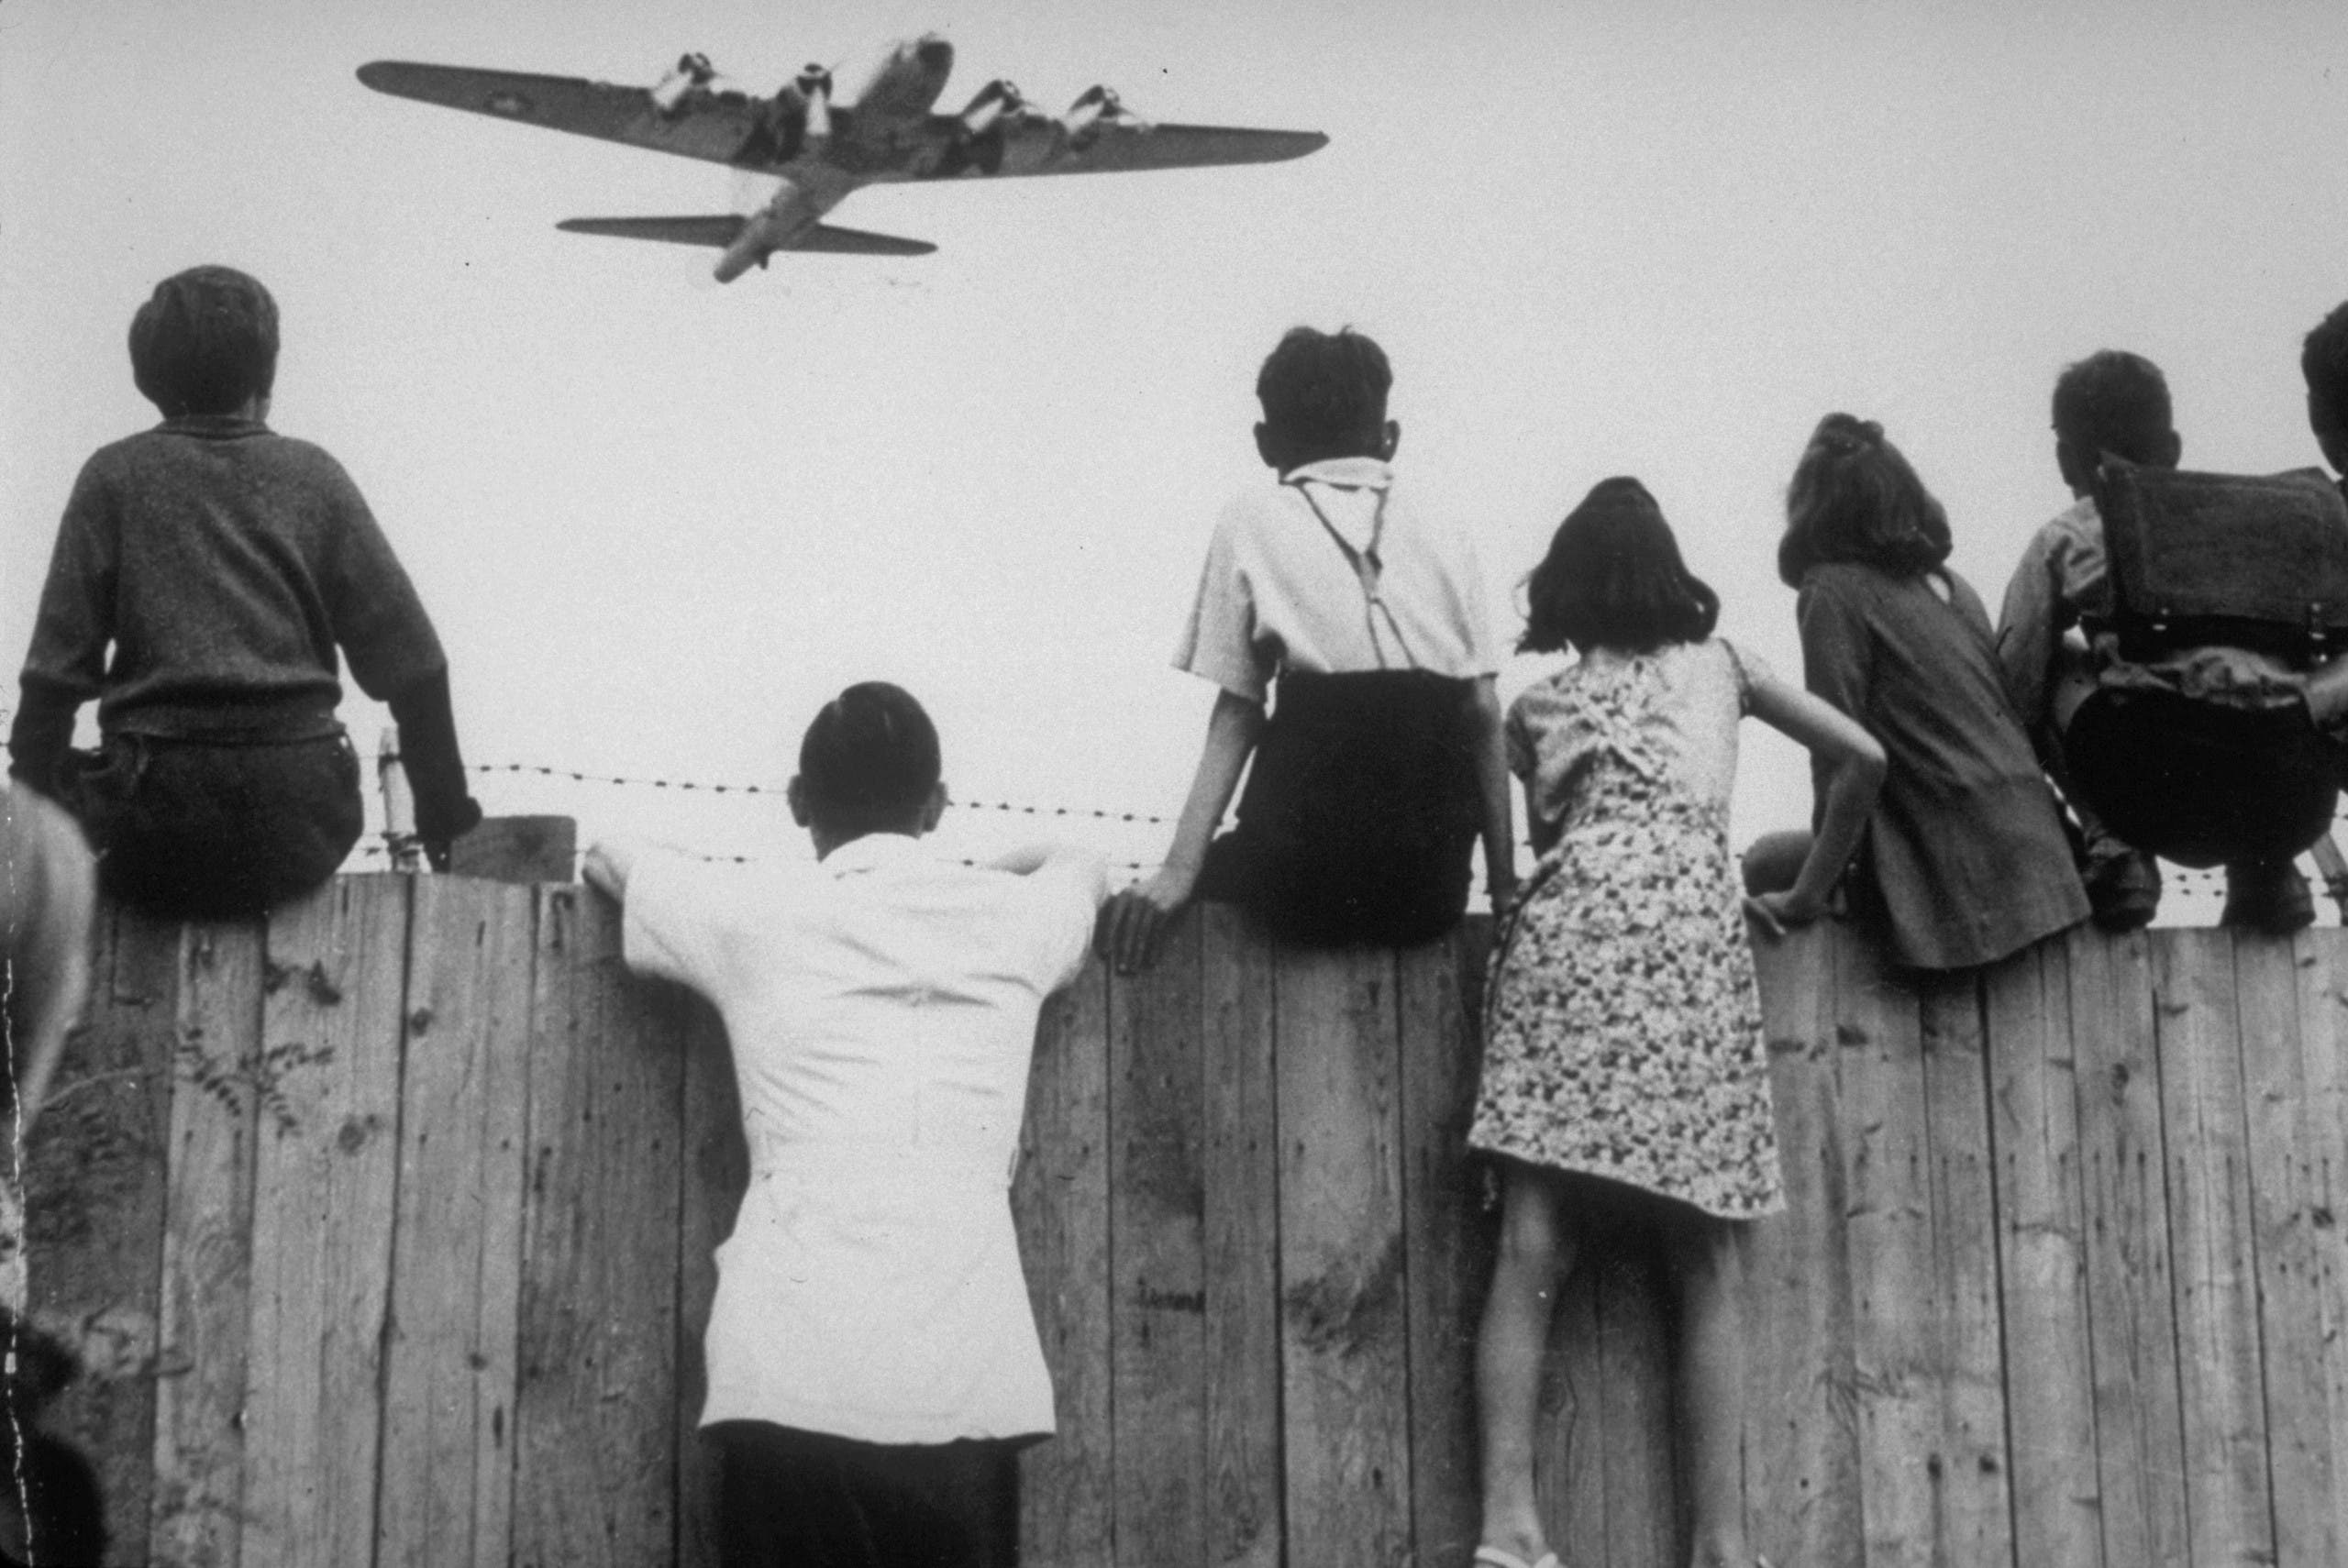 West Berlin children perched on the fence of Tempelhof airport watch the fleets of U.S. airplanes bringing in supplies in 1948 to circumvent the Russian blockade of land and waterways. (AP)